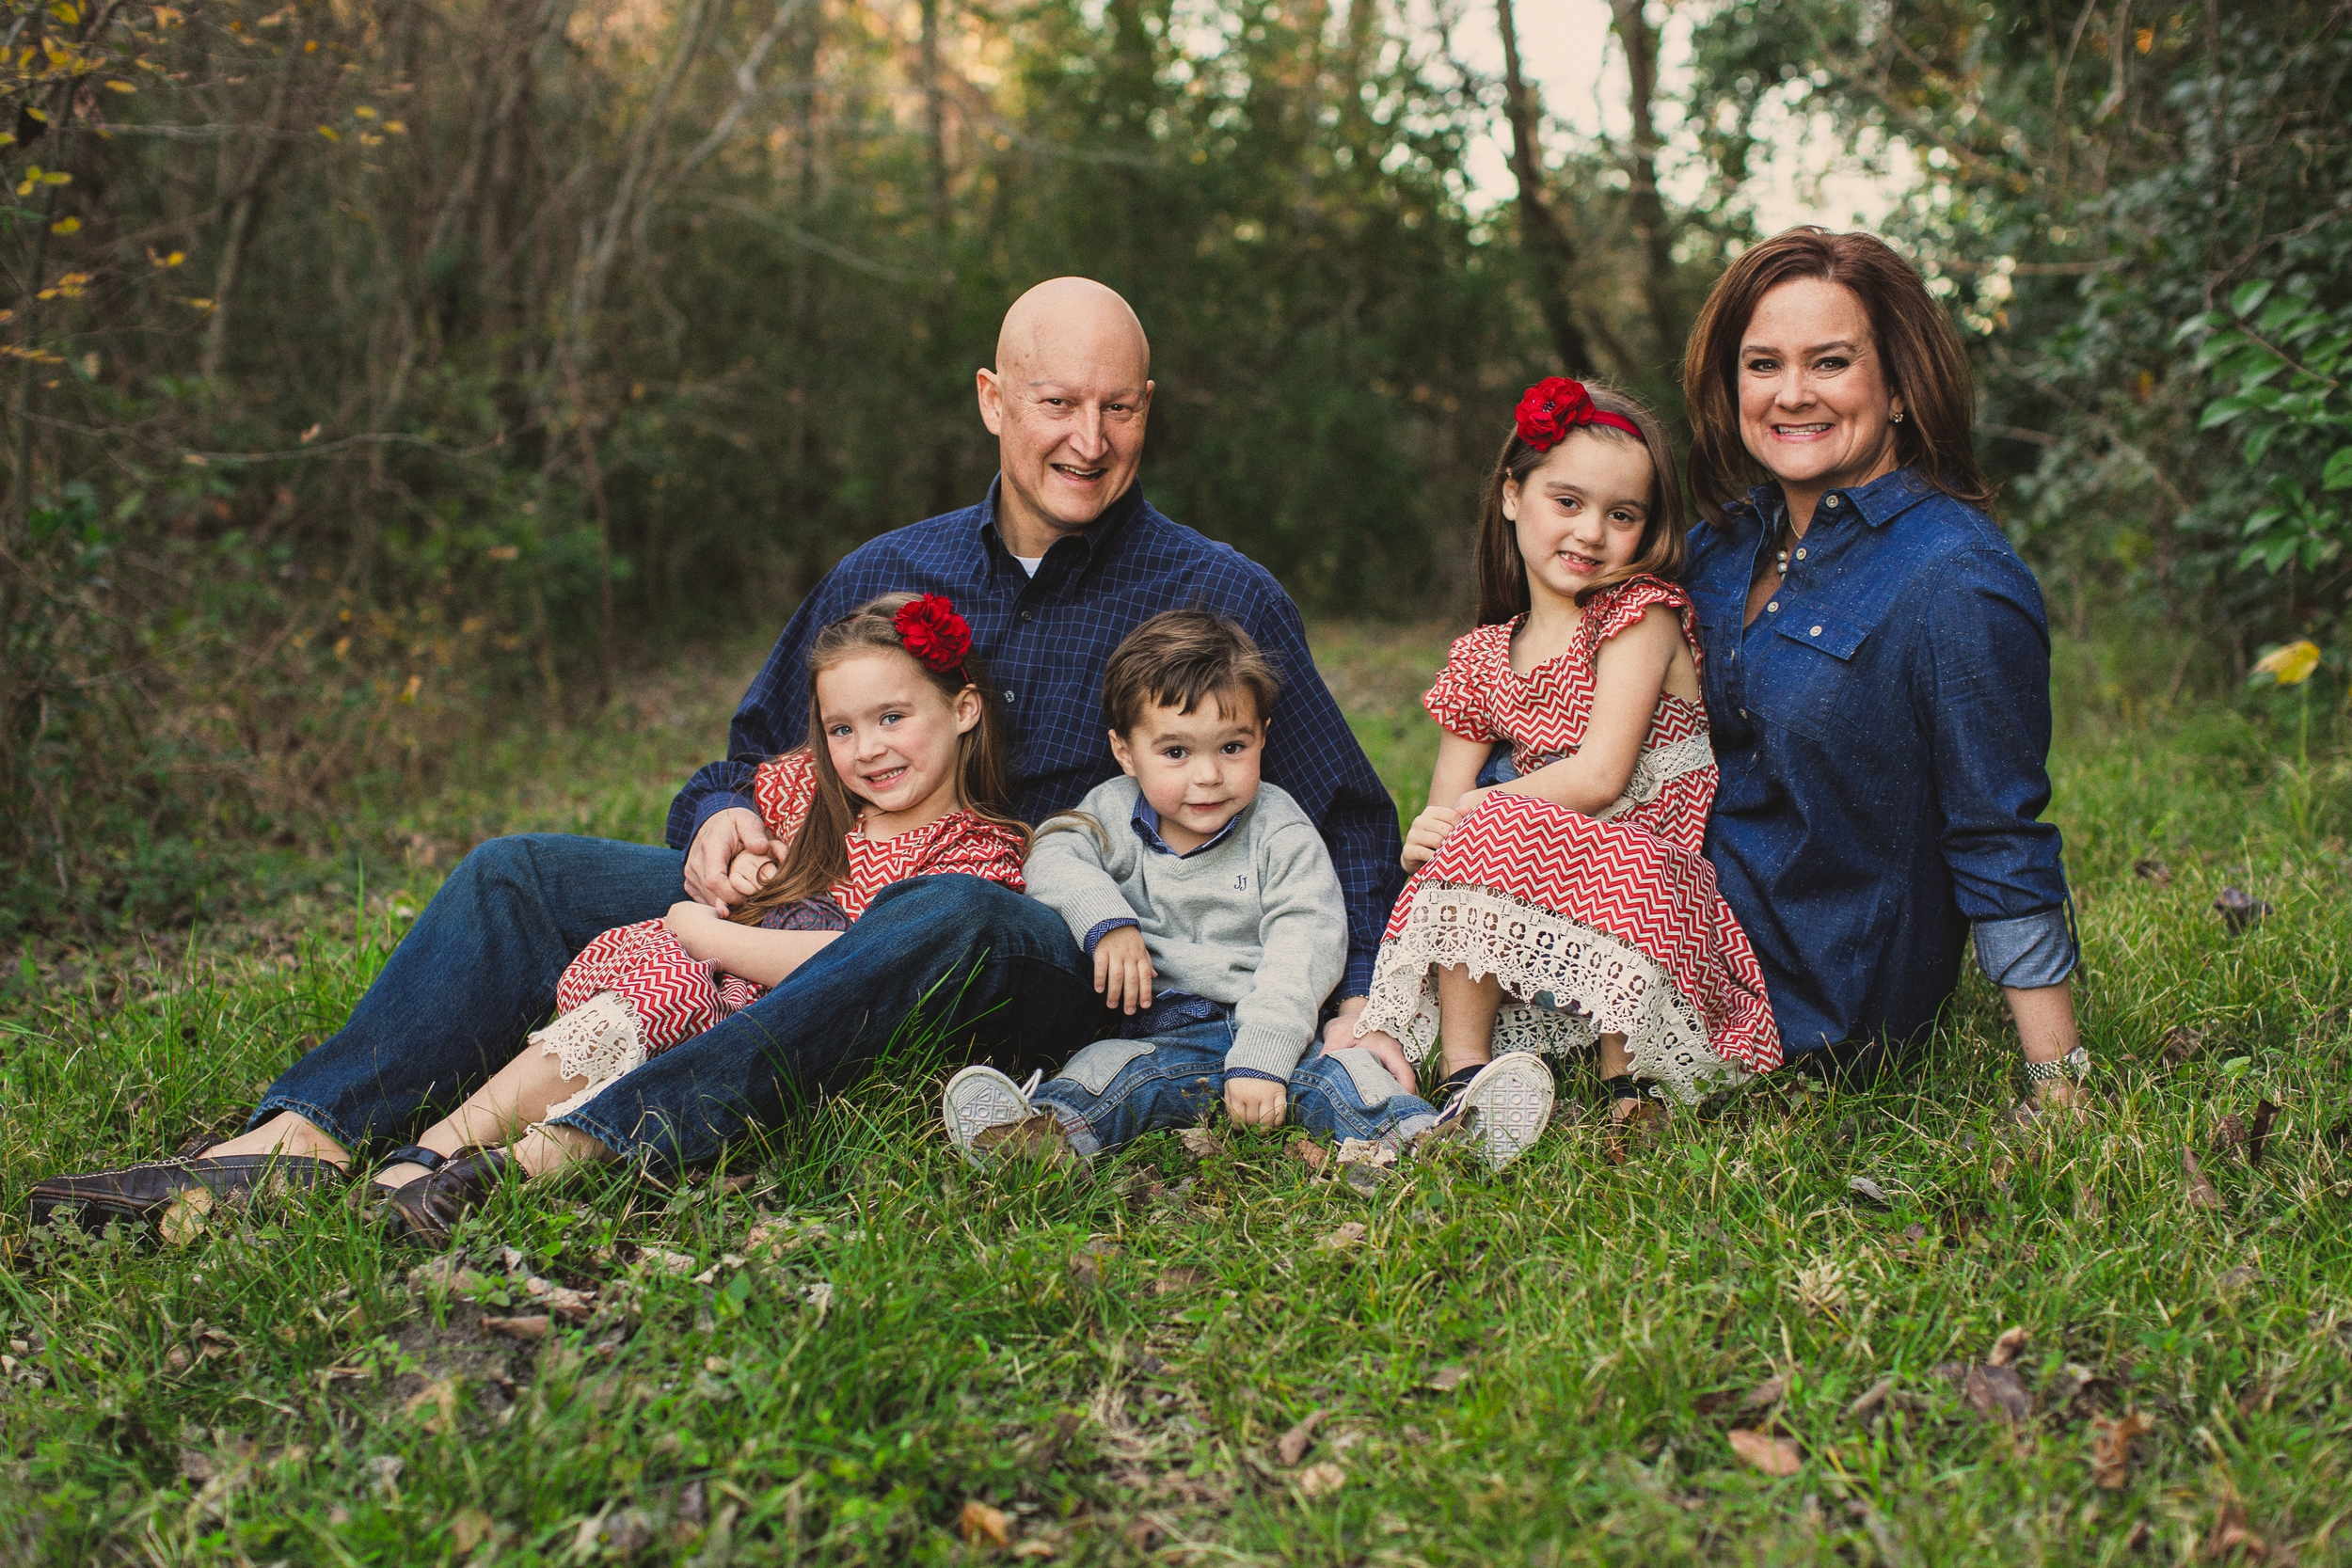 houstonfamilyphotographer_h2015_brimberry-164-final.jpg